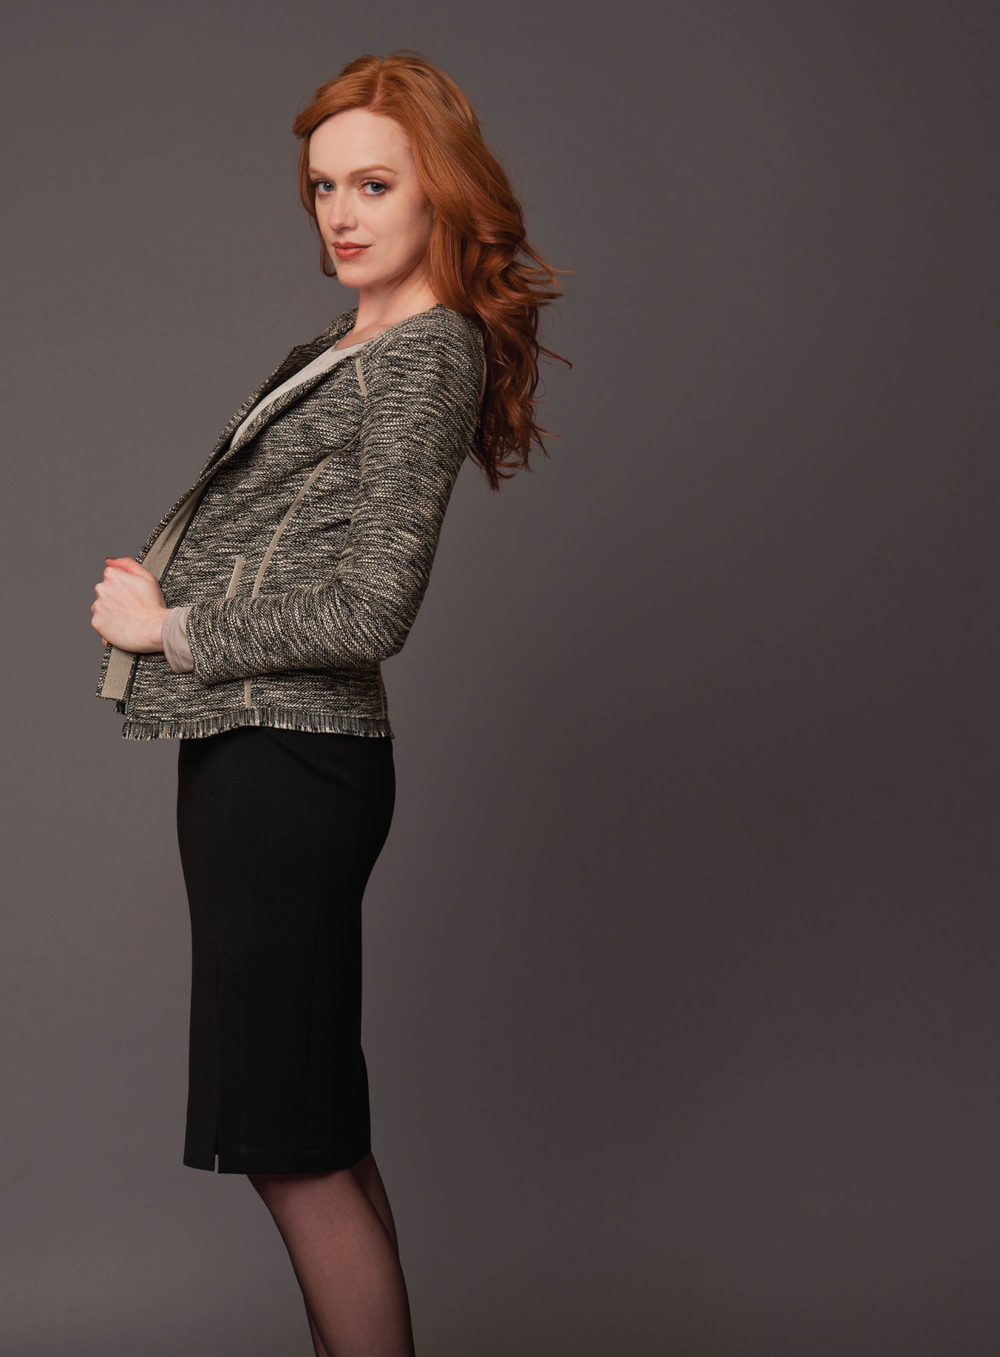 tweed seamed zip jacket  salt and pepper   long sleeve perfect tee  pale taupe   high waist ponte knit pencil skirt  black